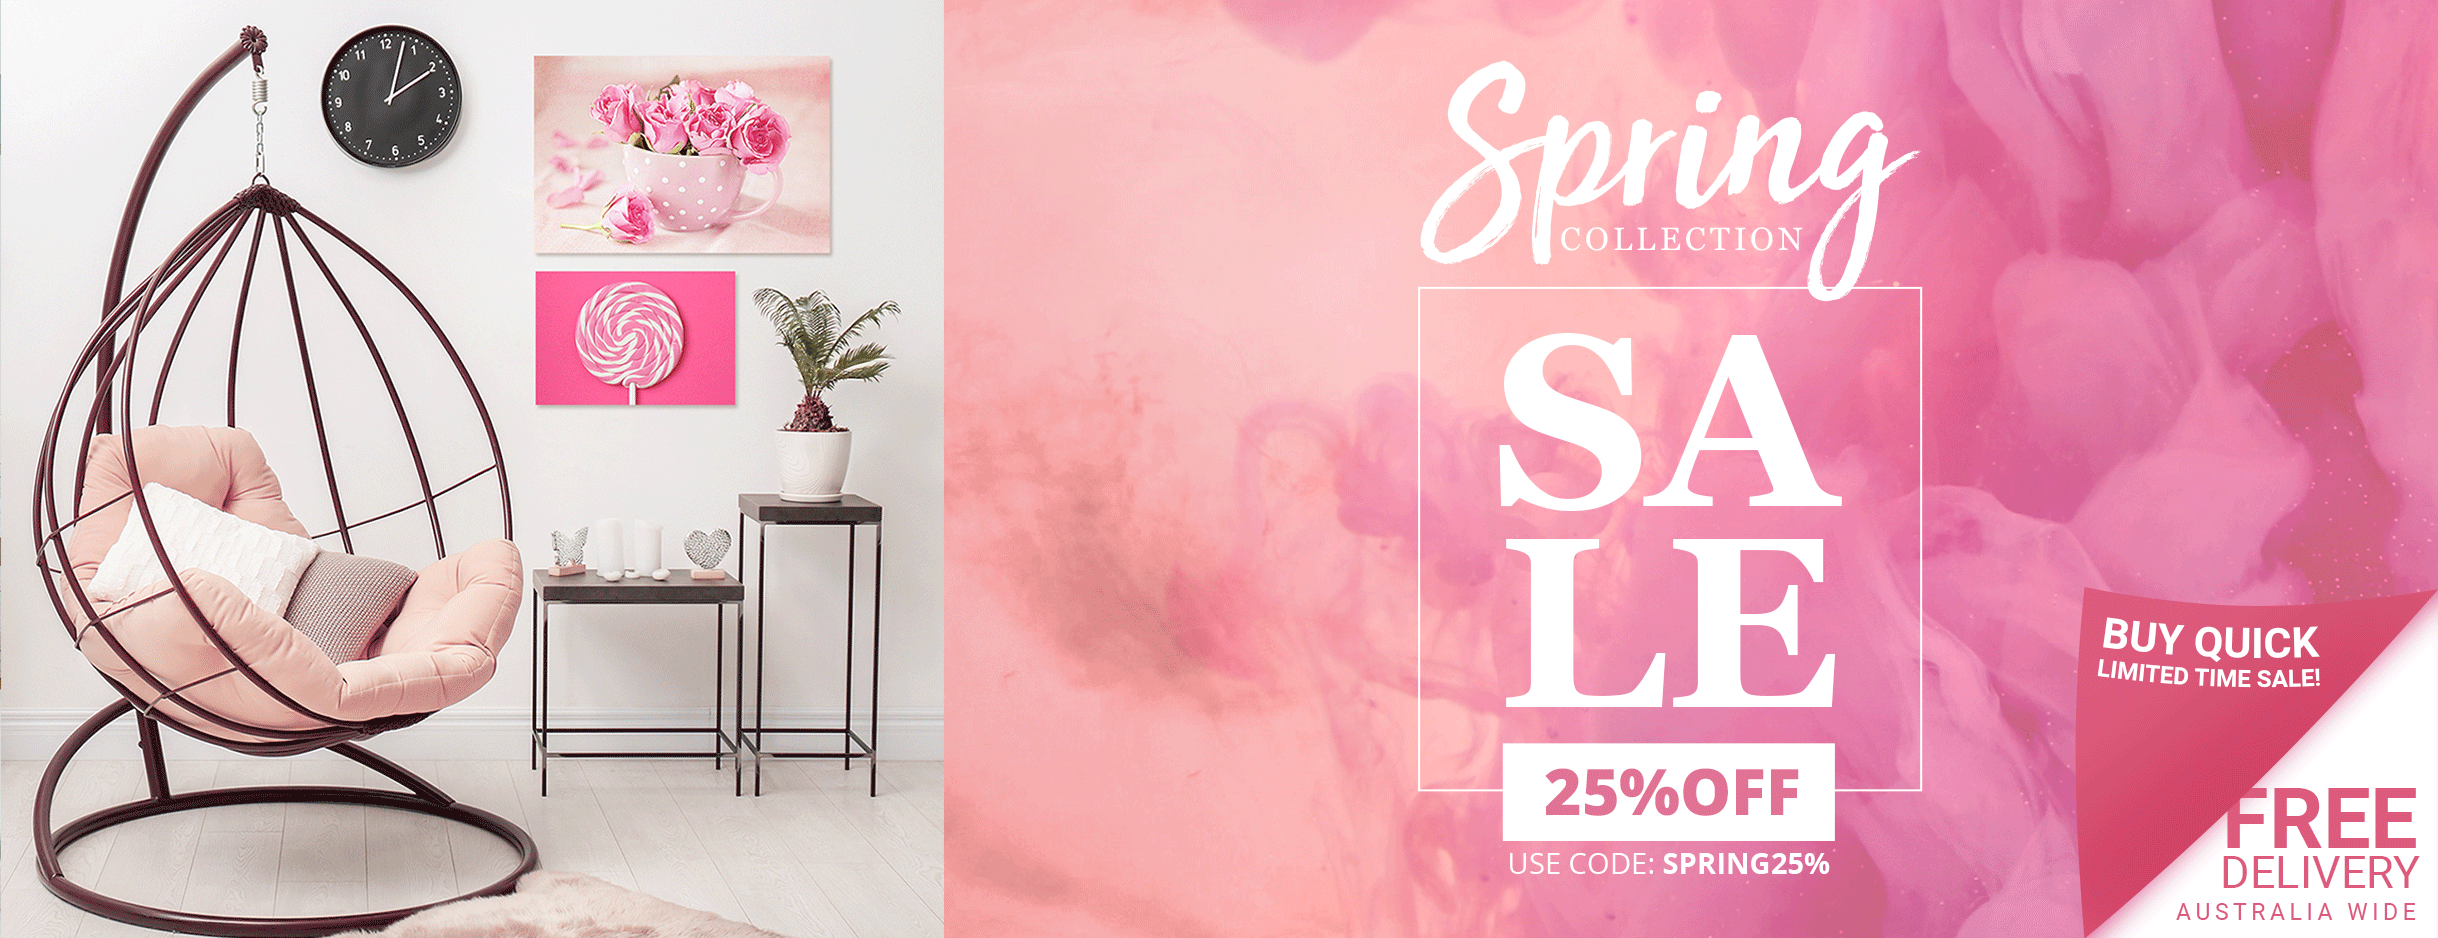 spring-wall-art-on-canvas-collection.png